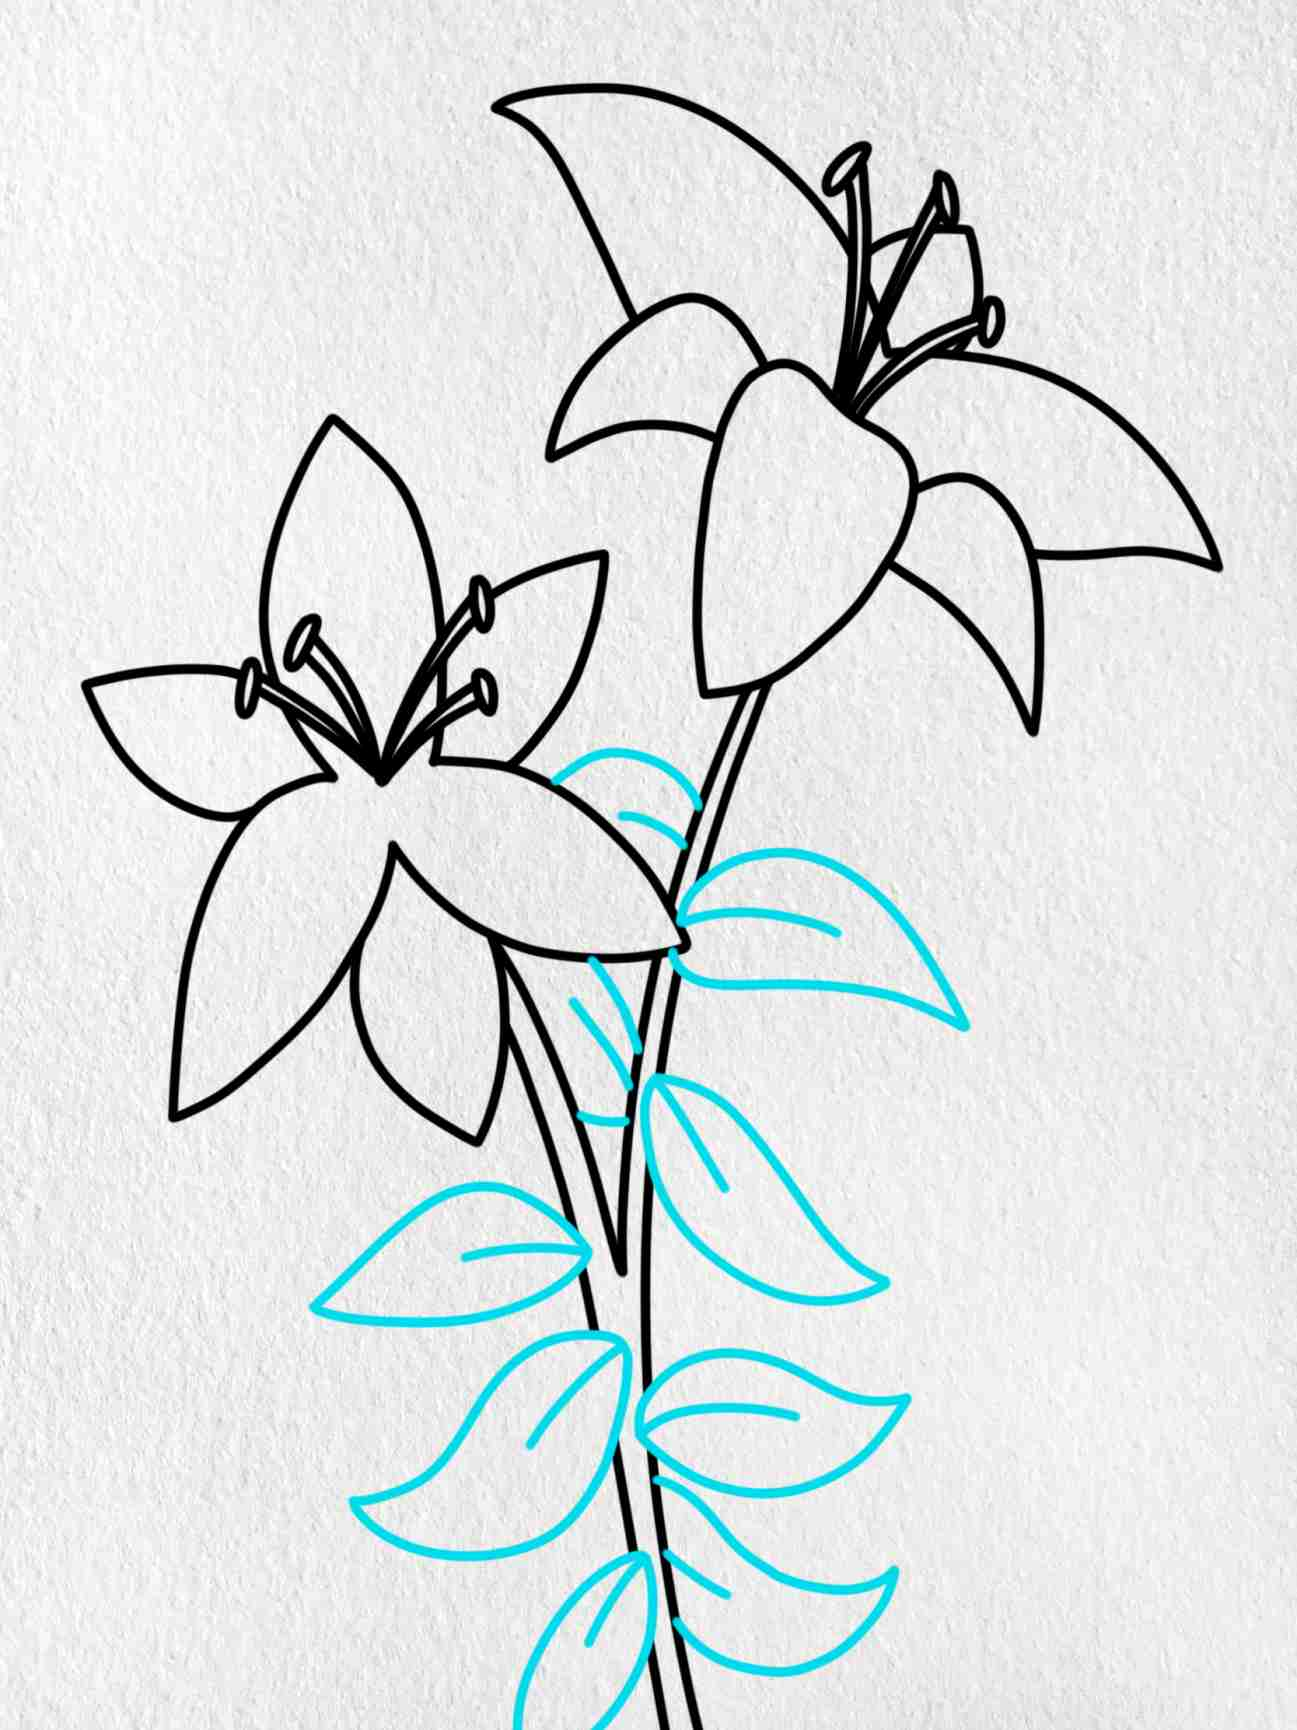 How To Draw A Lily: Step 8